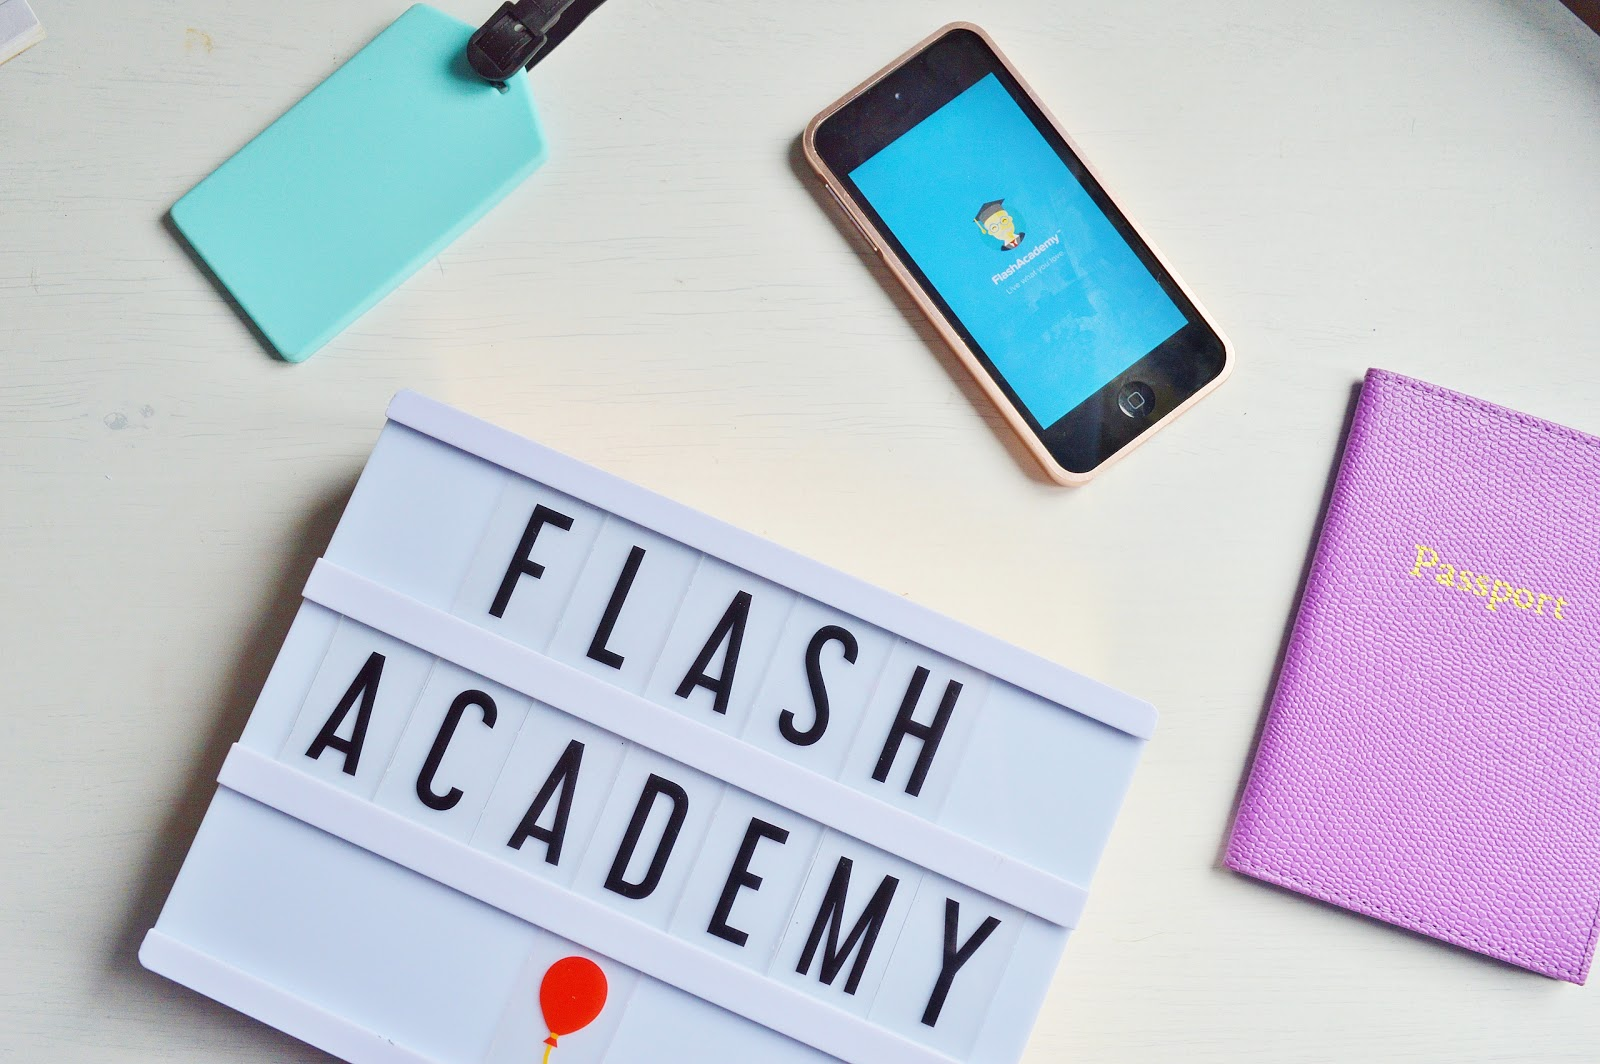 Flash Academy App